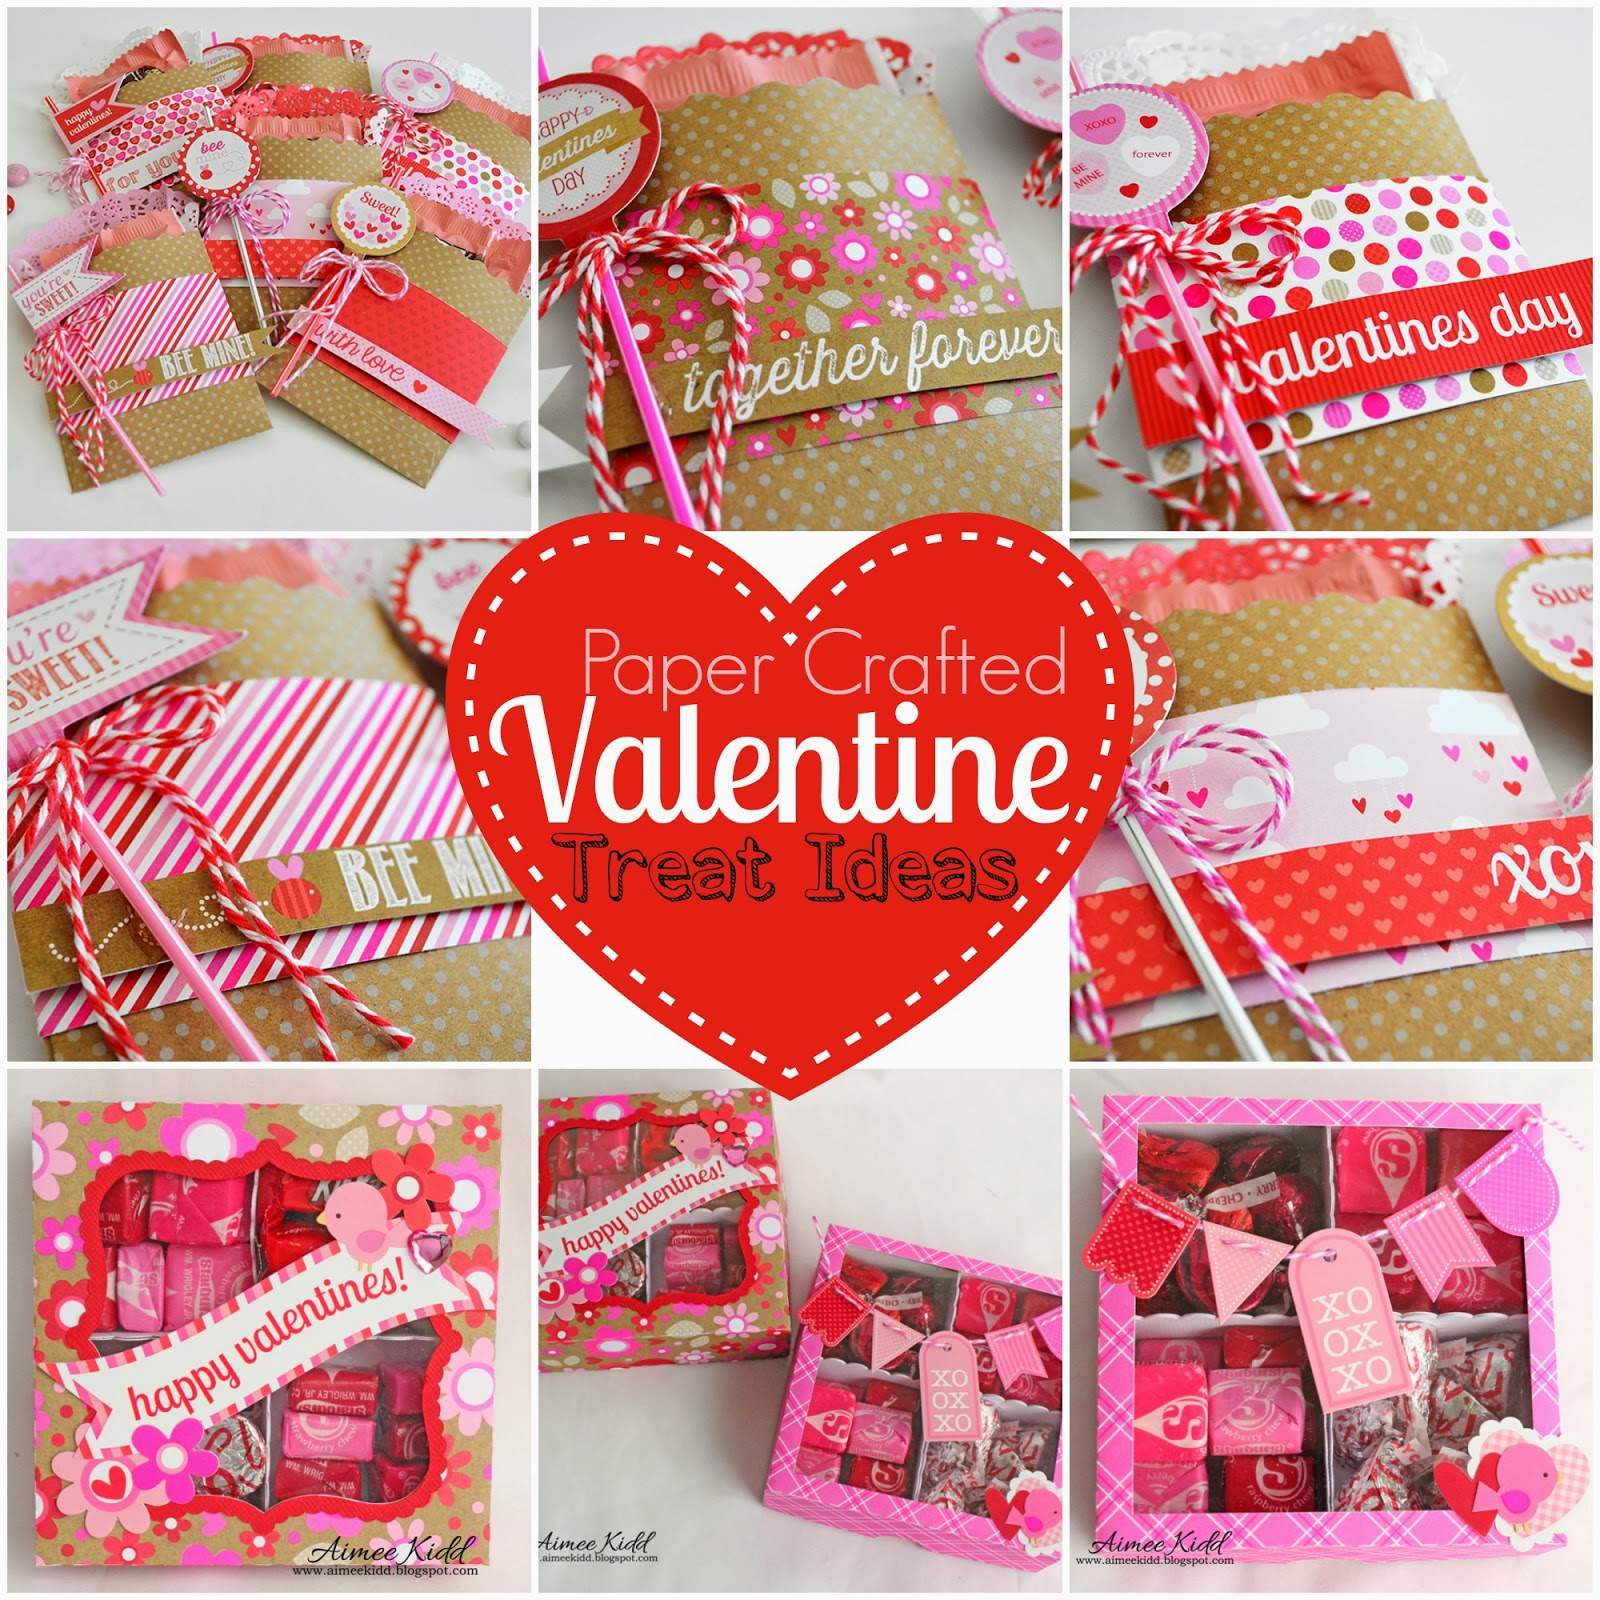 Valentines Treat Bags By Wendy Sue Anderson Hi Doodlebug Friends It S Sharing A Fun Little Project Chocolate Is Always Great To